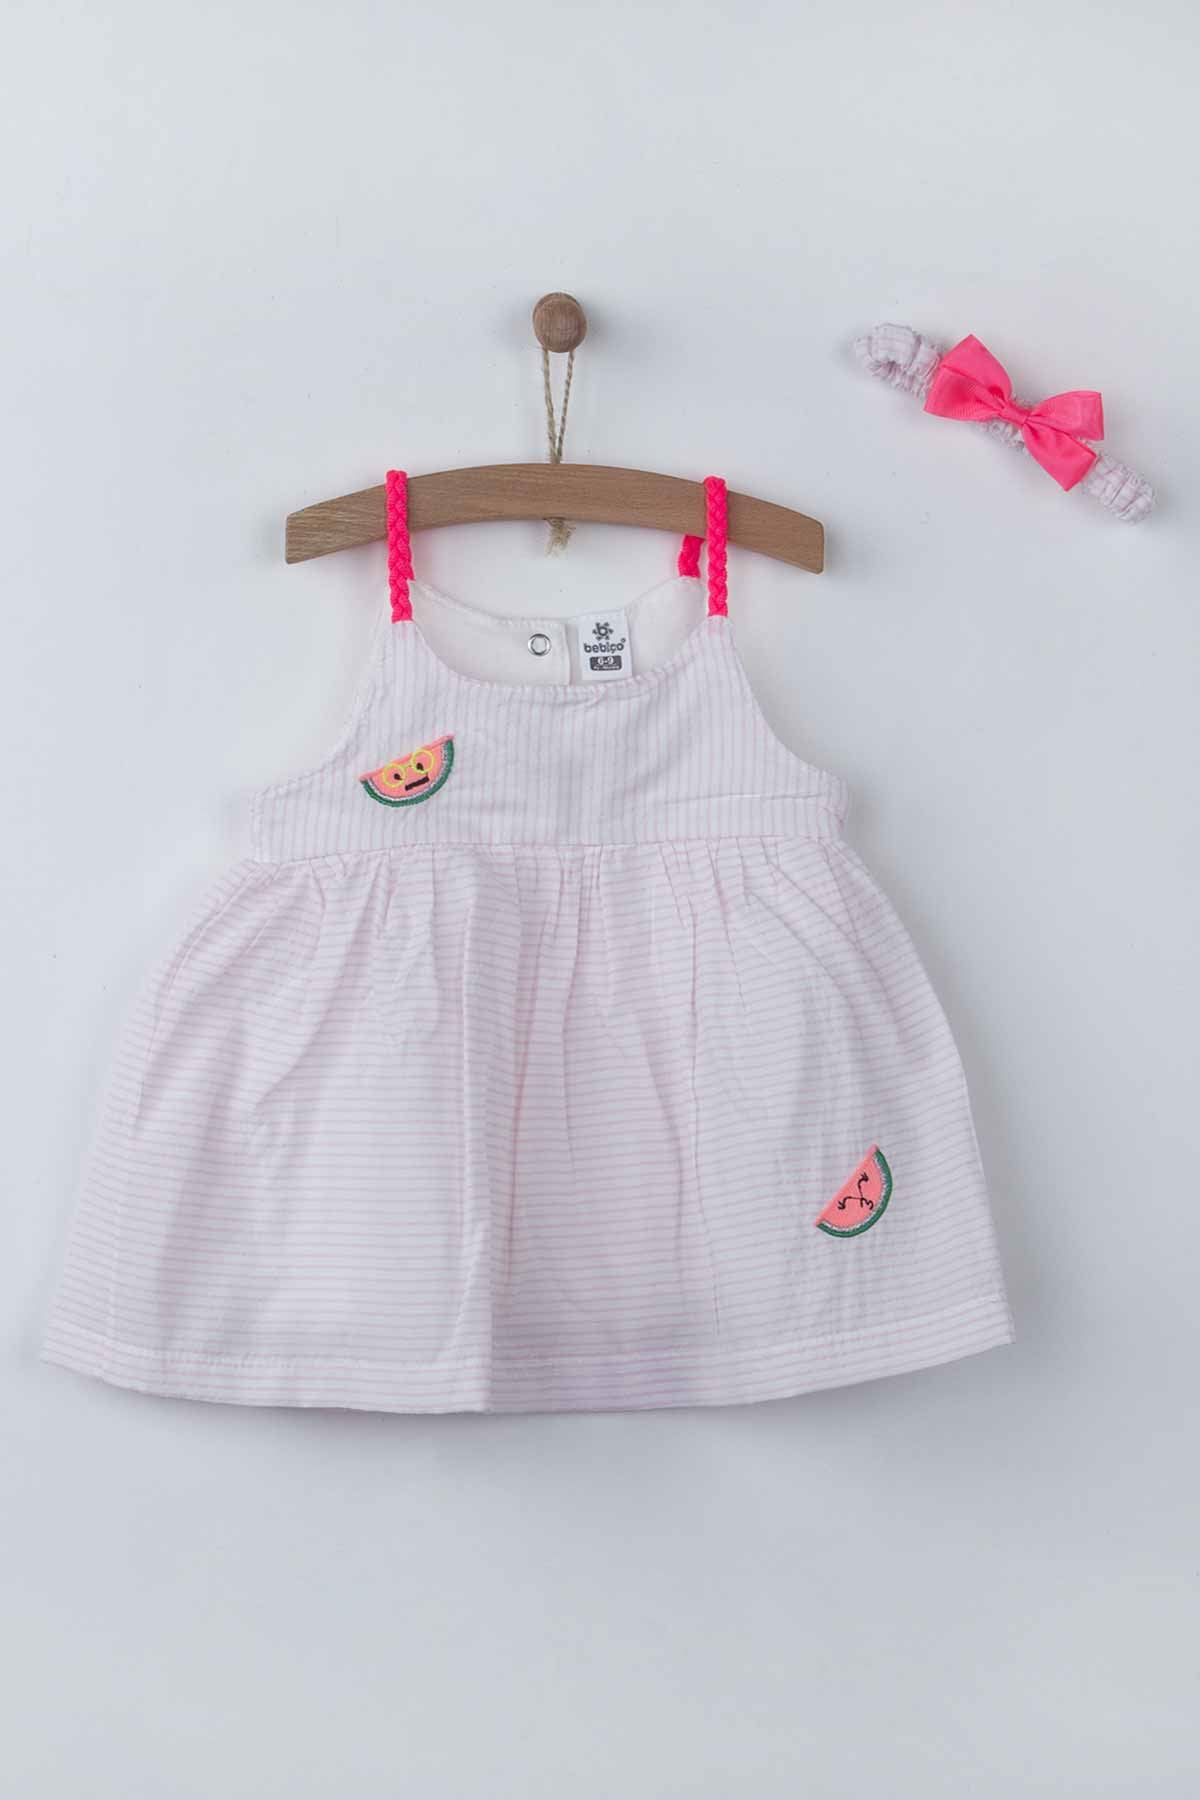 Pink Baby Girl Dress Summer 2-piece Suit Clothes Set Dress Hairband Cute Cute Babies outfit Holiday Beach Wear clothing Models